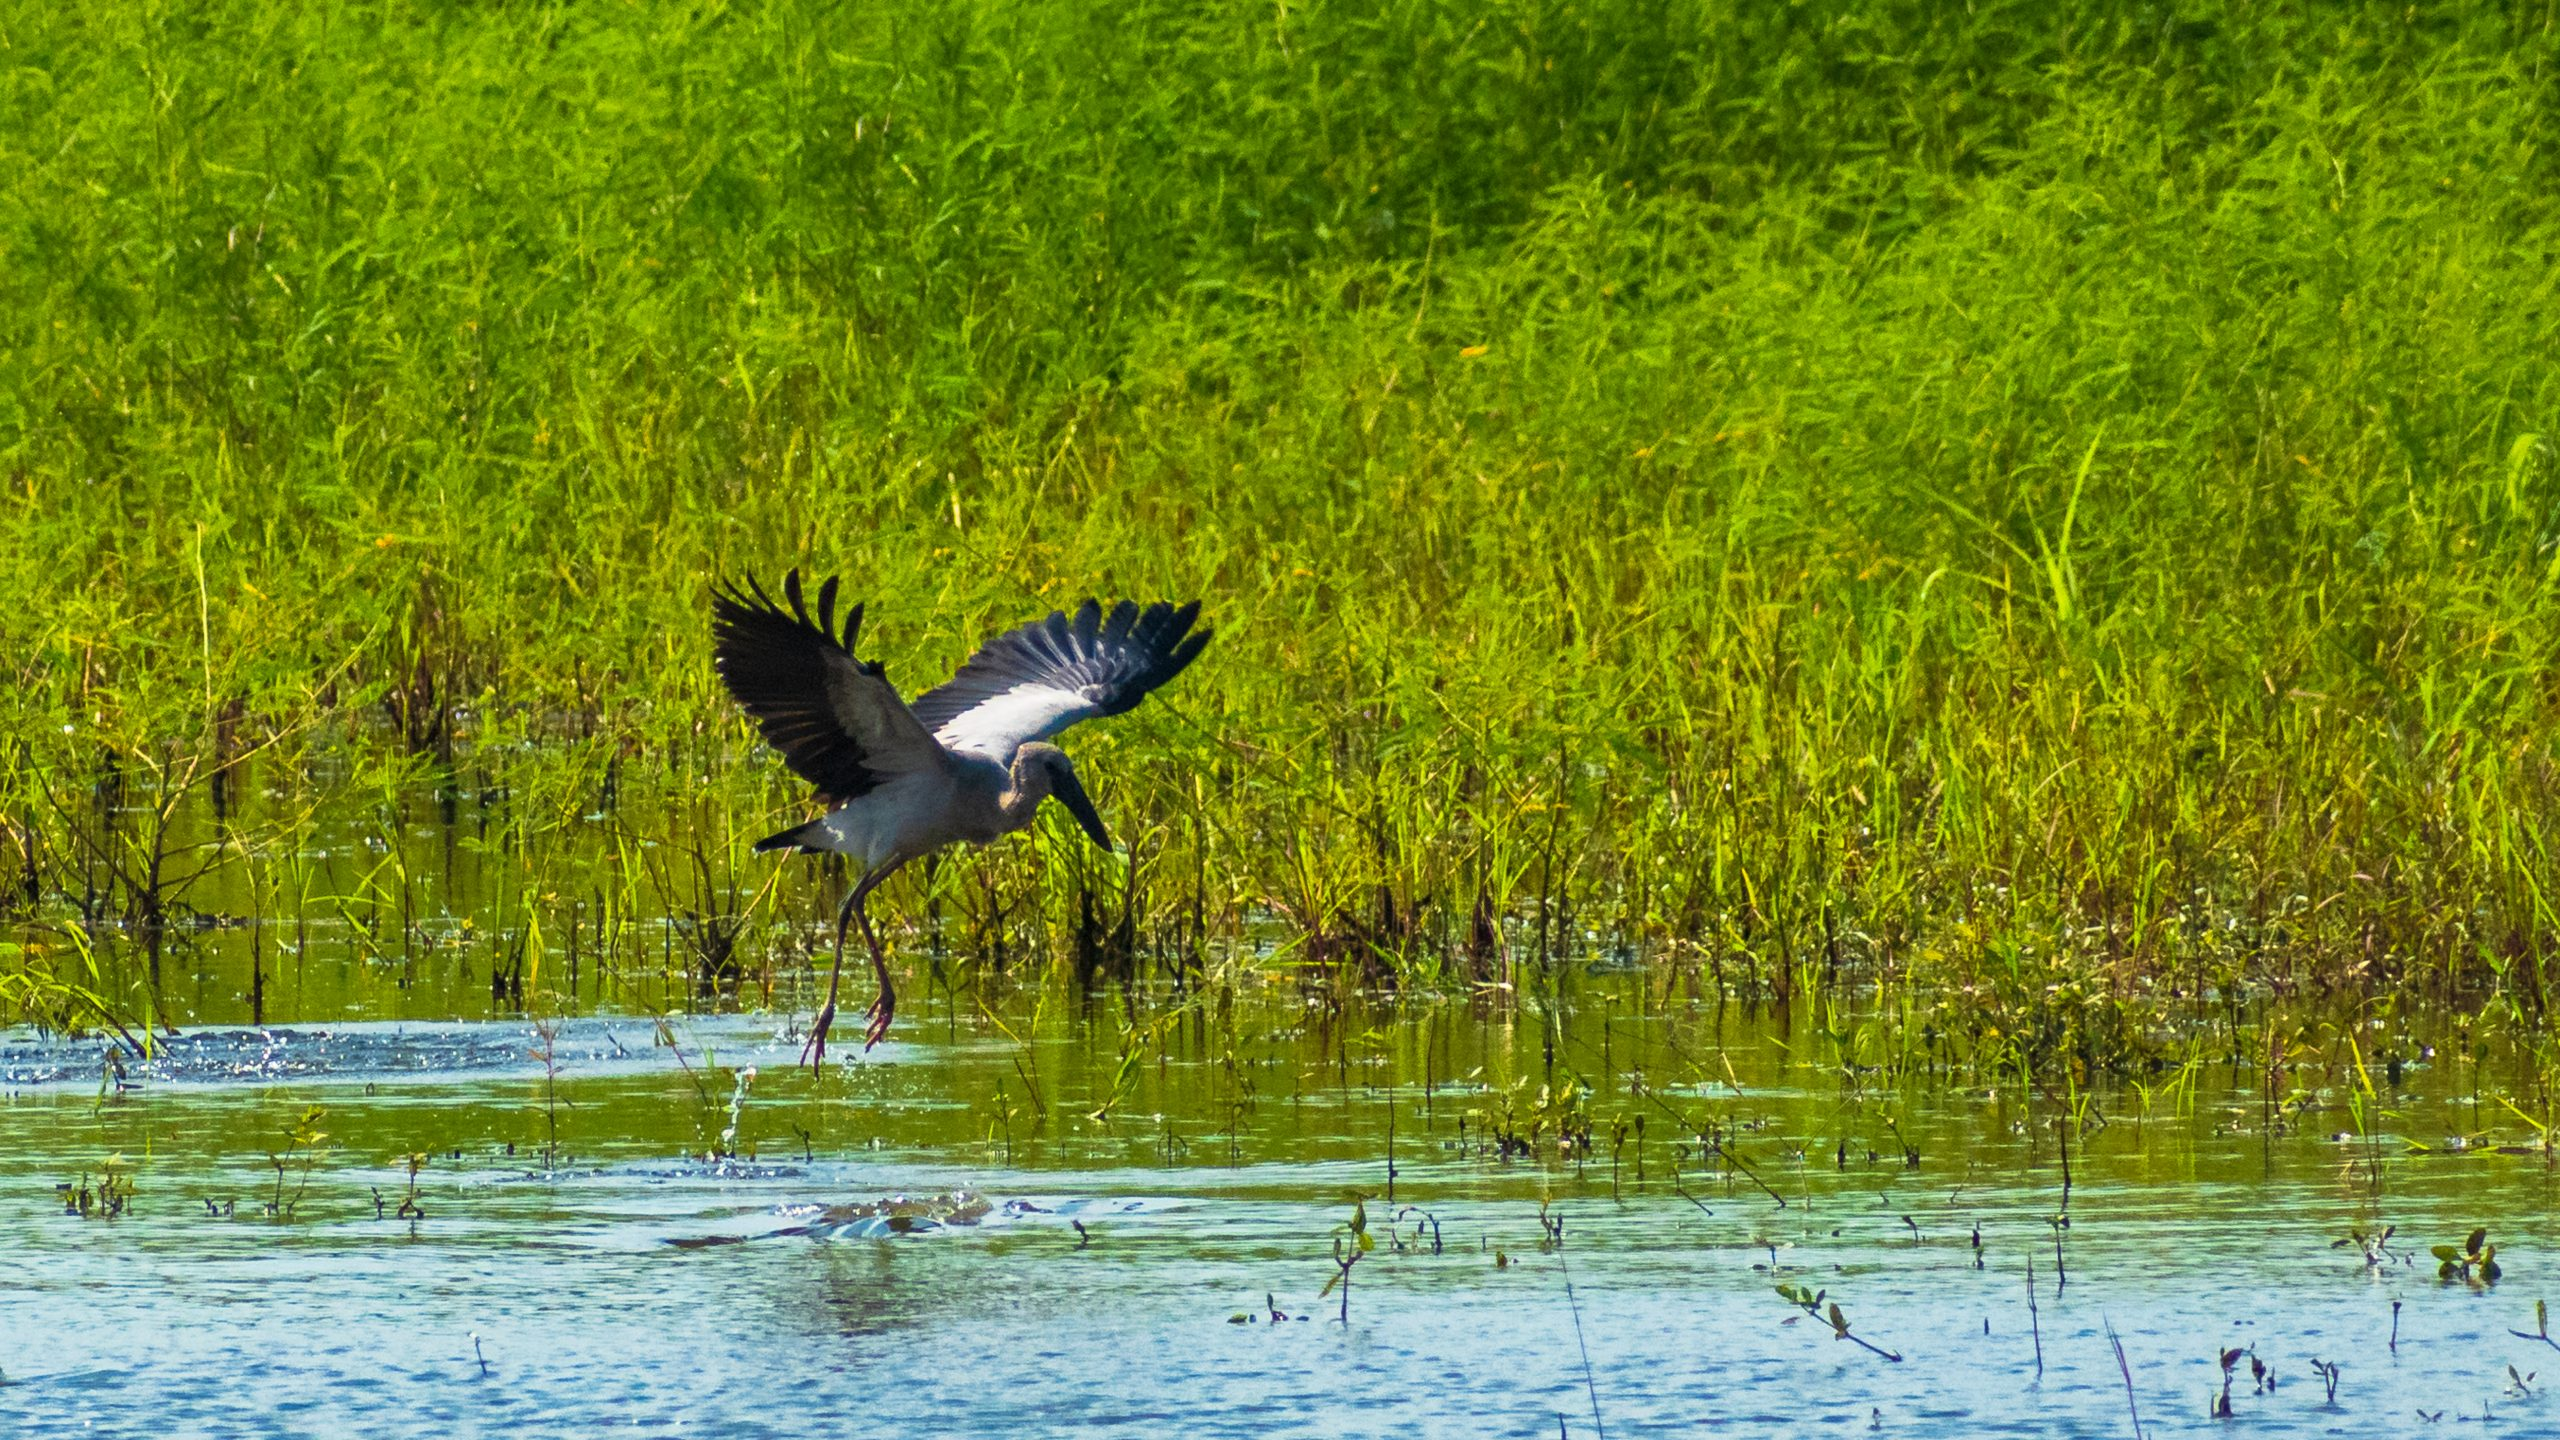 Asian Openbill Stork Hunting for Food